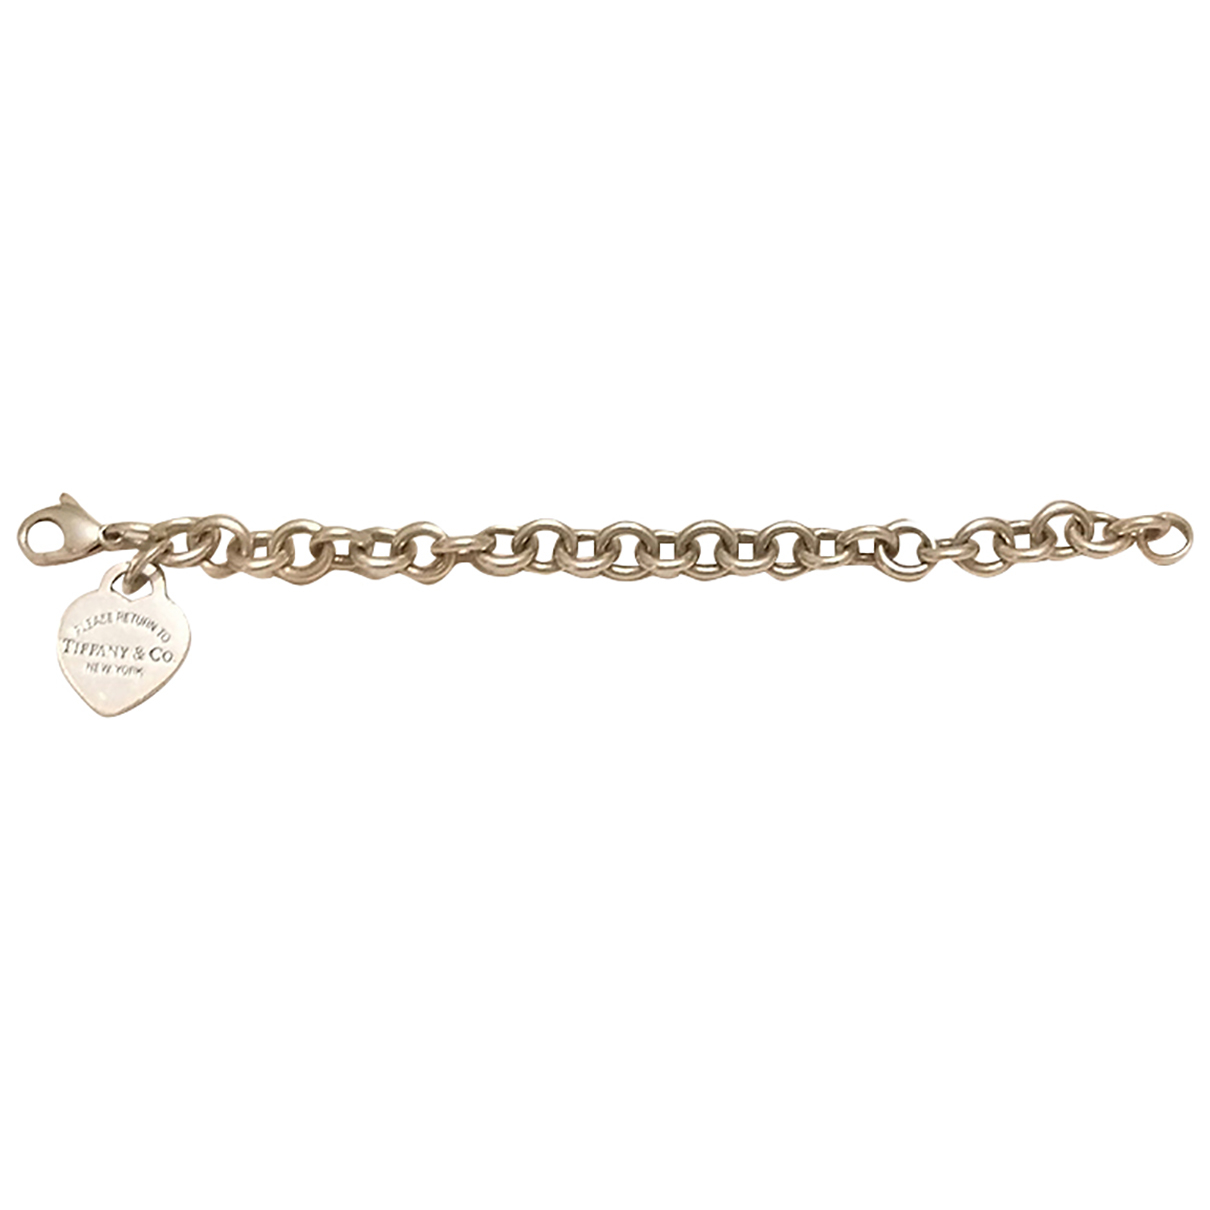 Tiffany & Co Return to Tiffany Armband in  Silber Silber